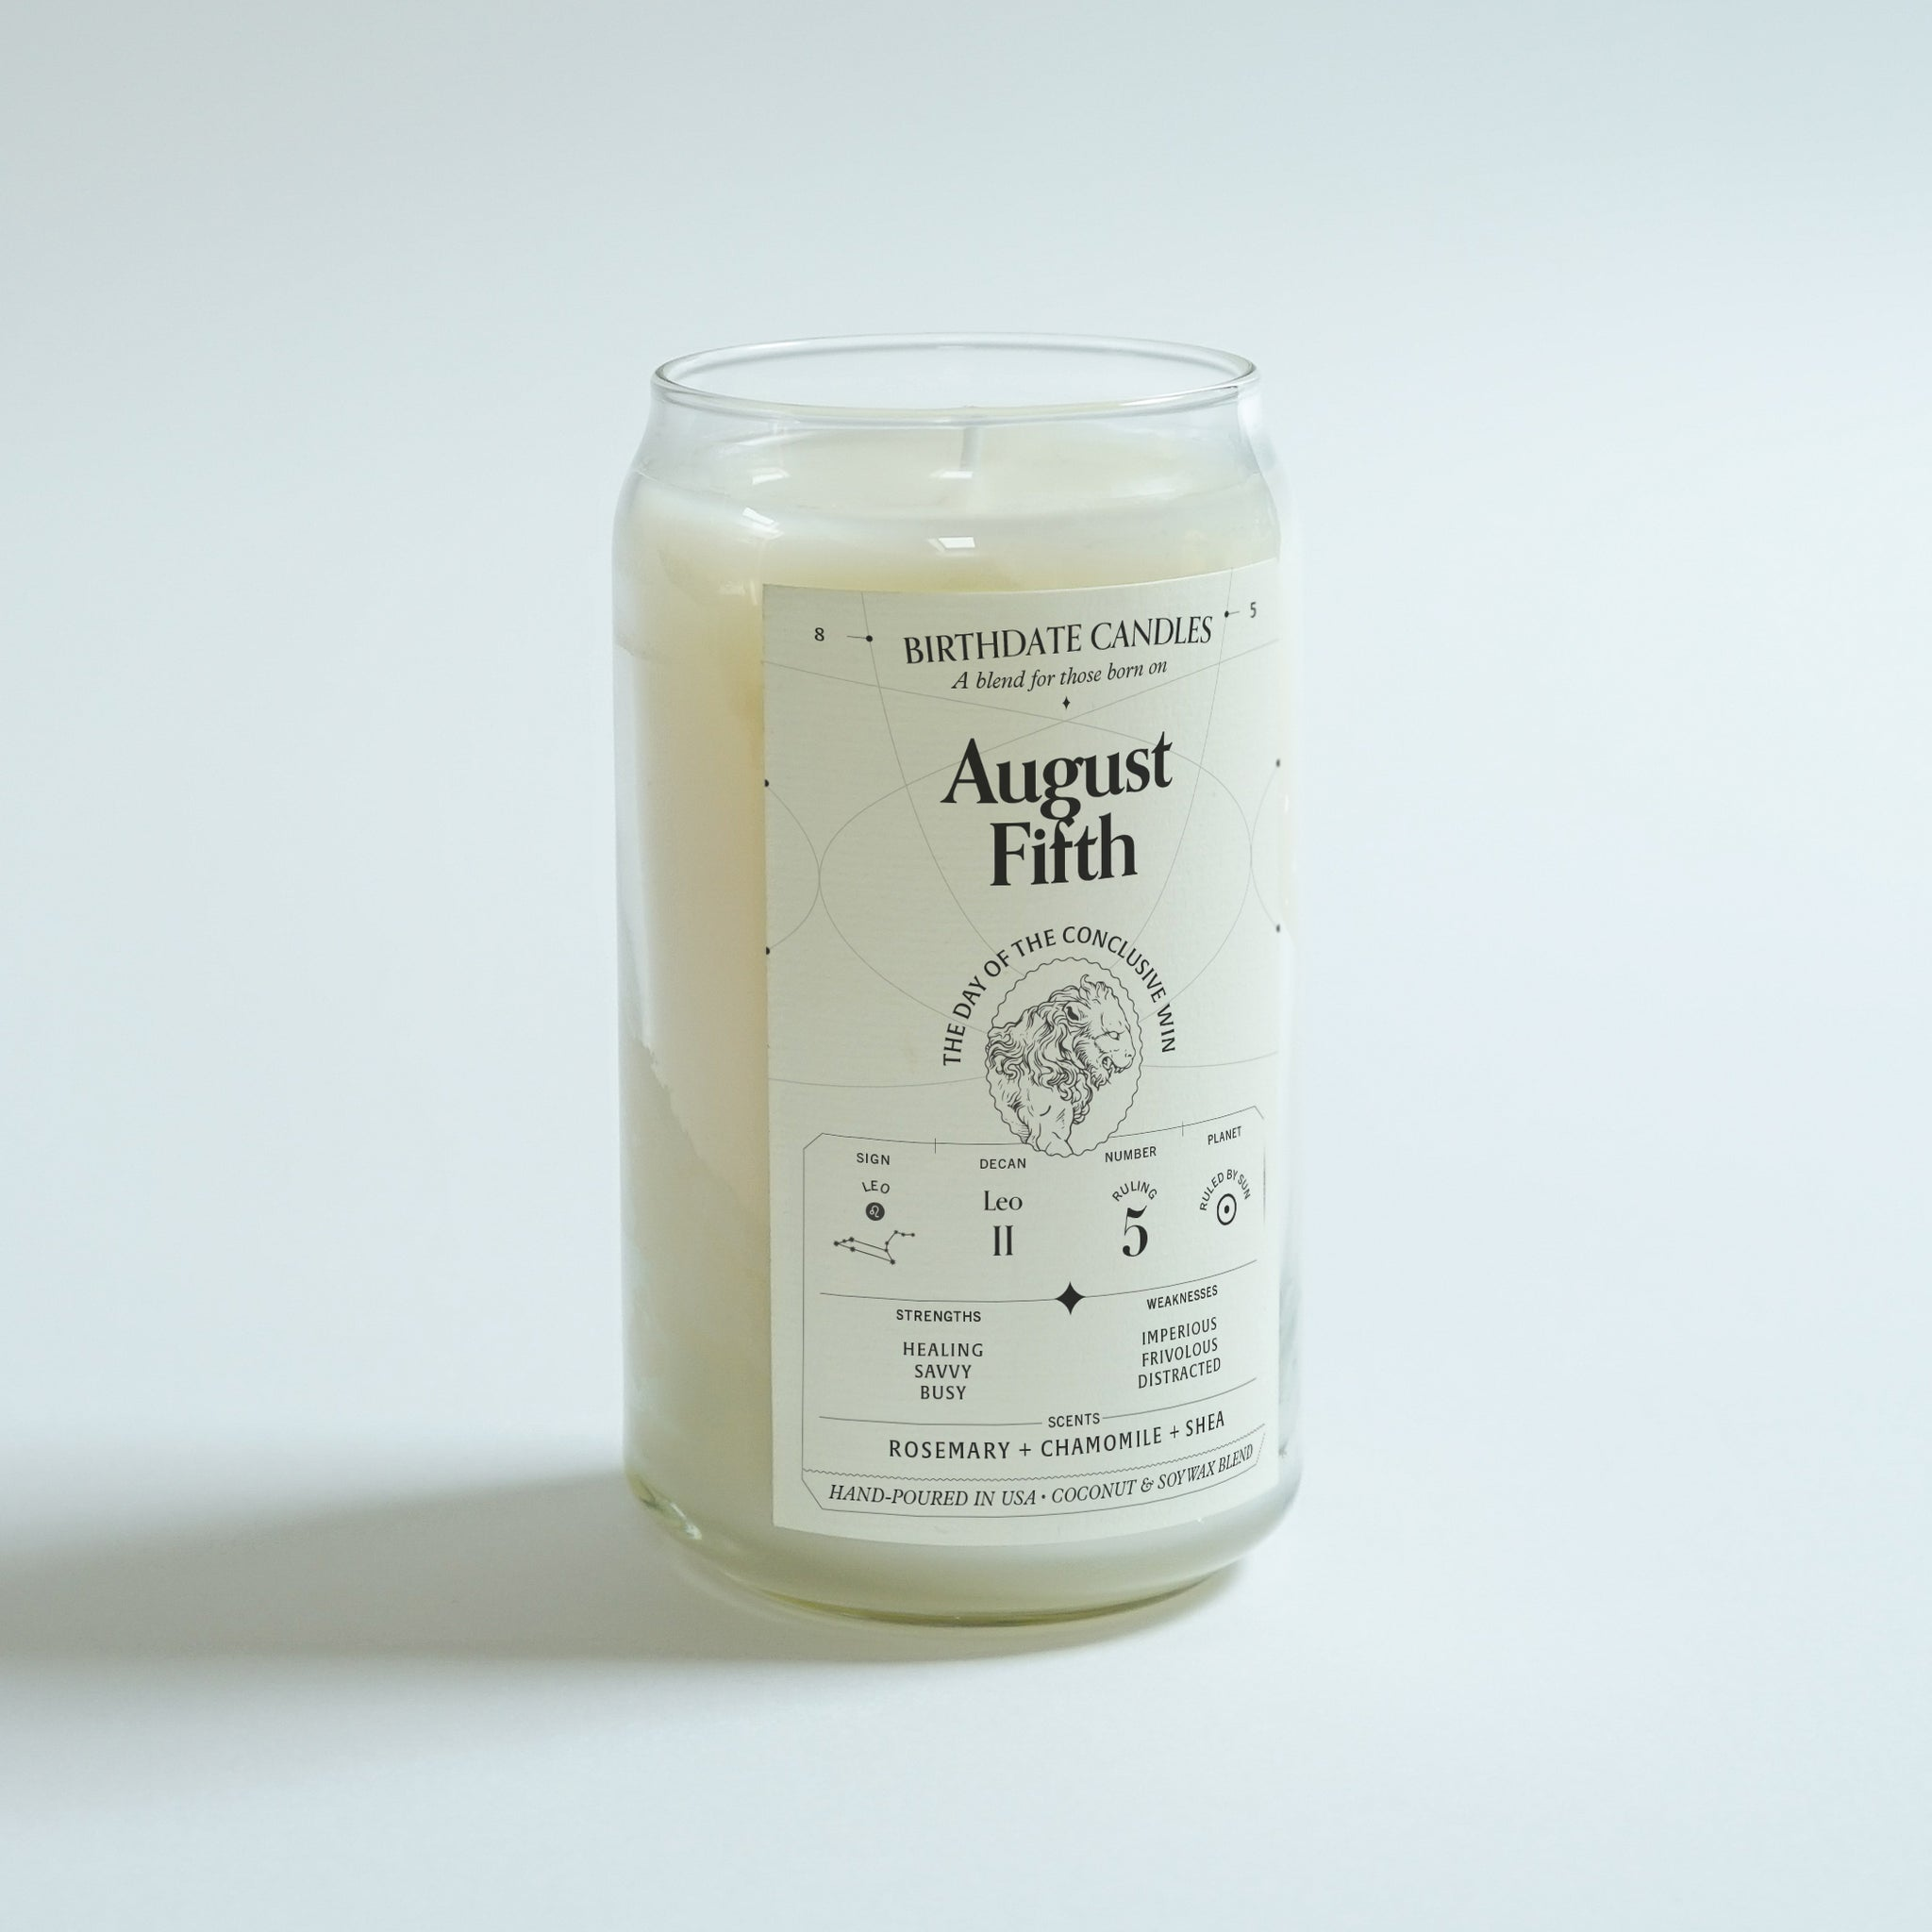 The August Fifth Candle